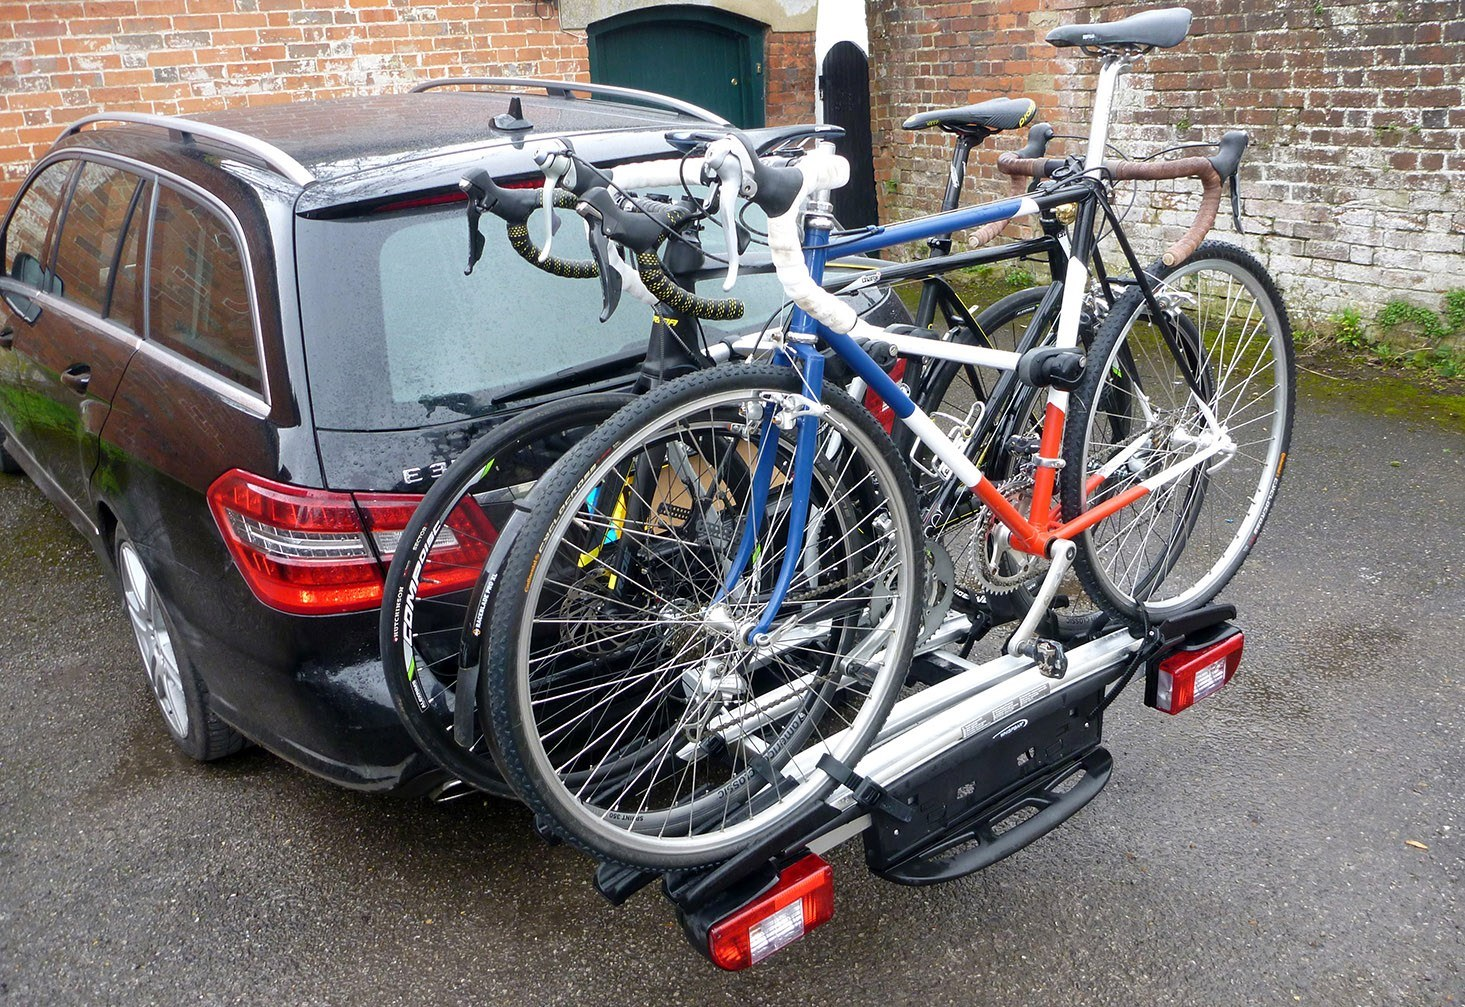 1x bike Roof Rack bike hold Steel EU Wheels N Bits Bike Carriers Tow bar Hitch Roof Rack boot Lid Trunk